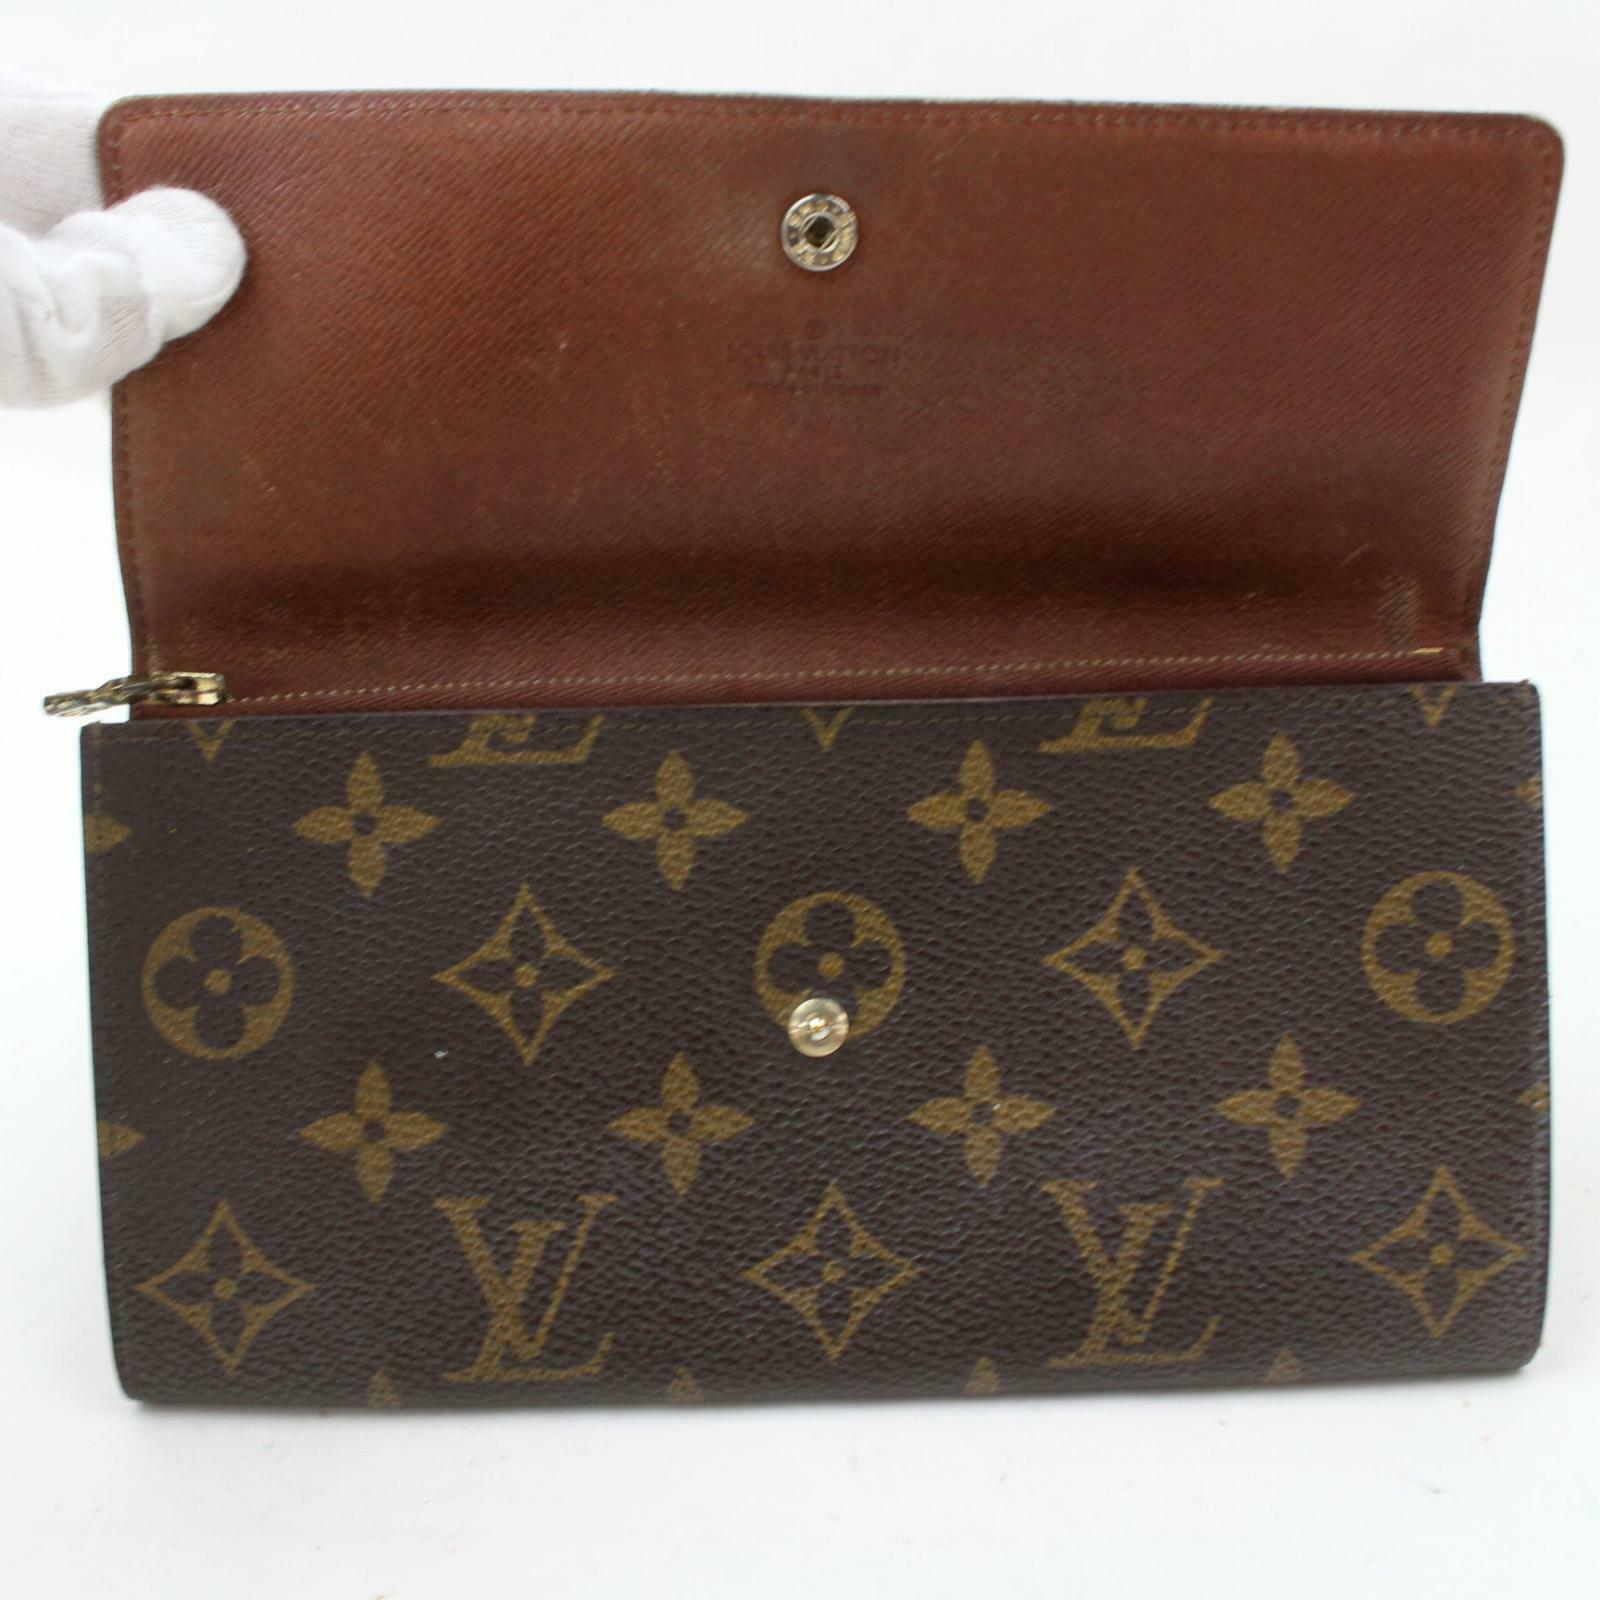 Louis Vuitton  Portefeuille Sarah Brown Monogram Long Wallet 11329 - eModaOutlet